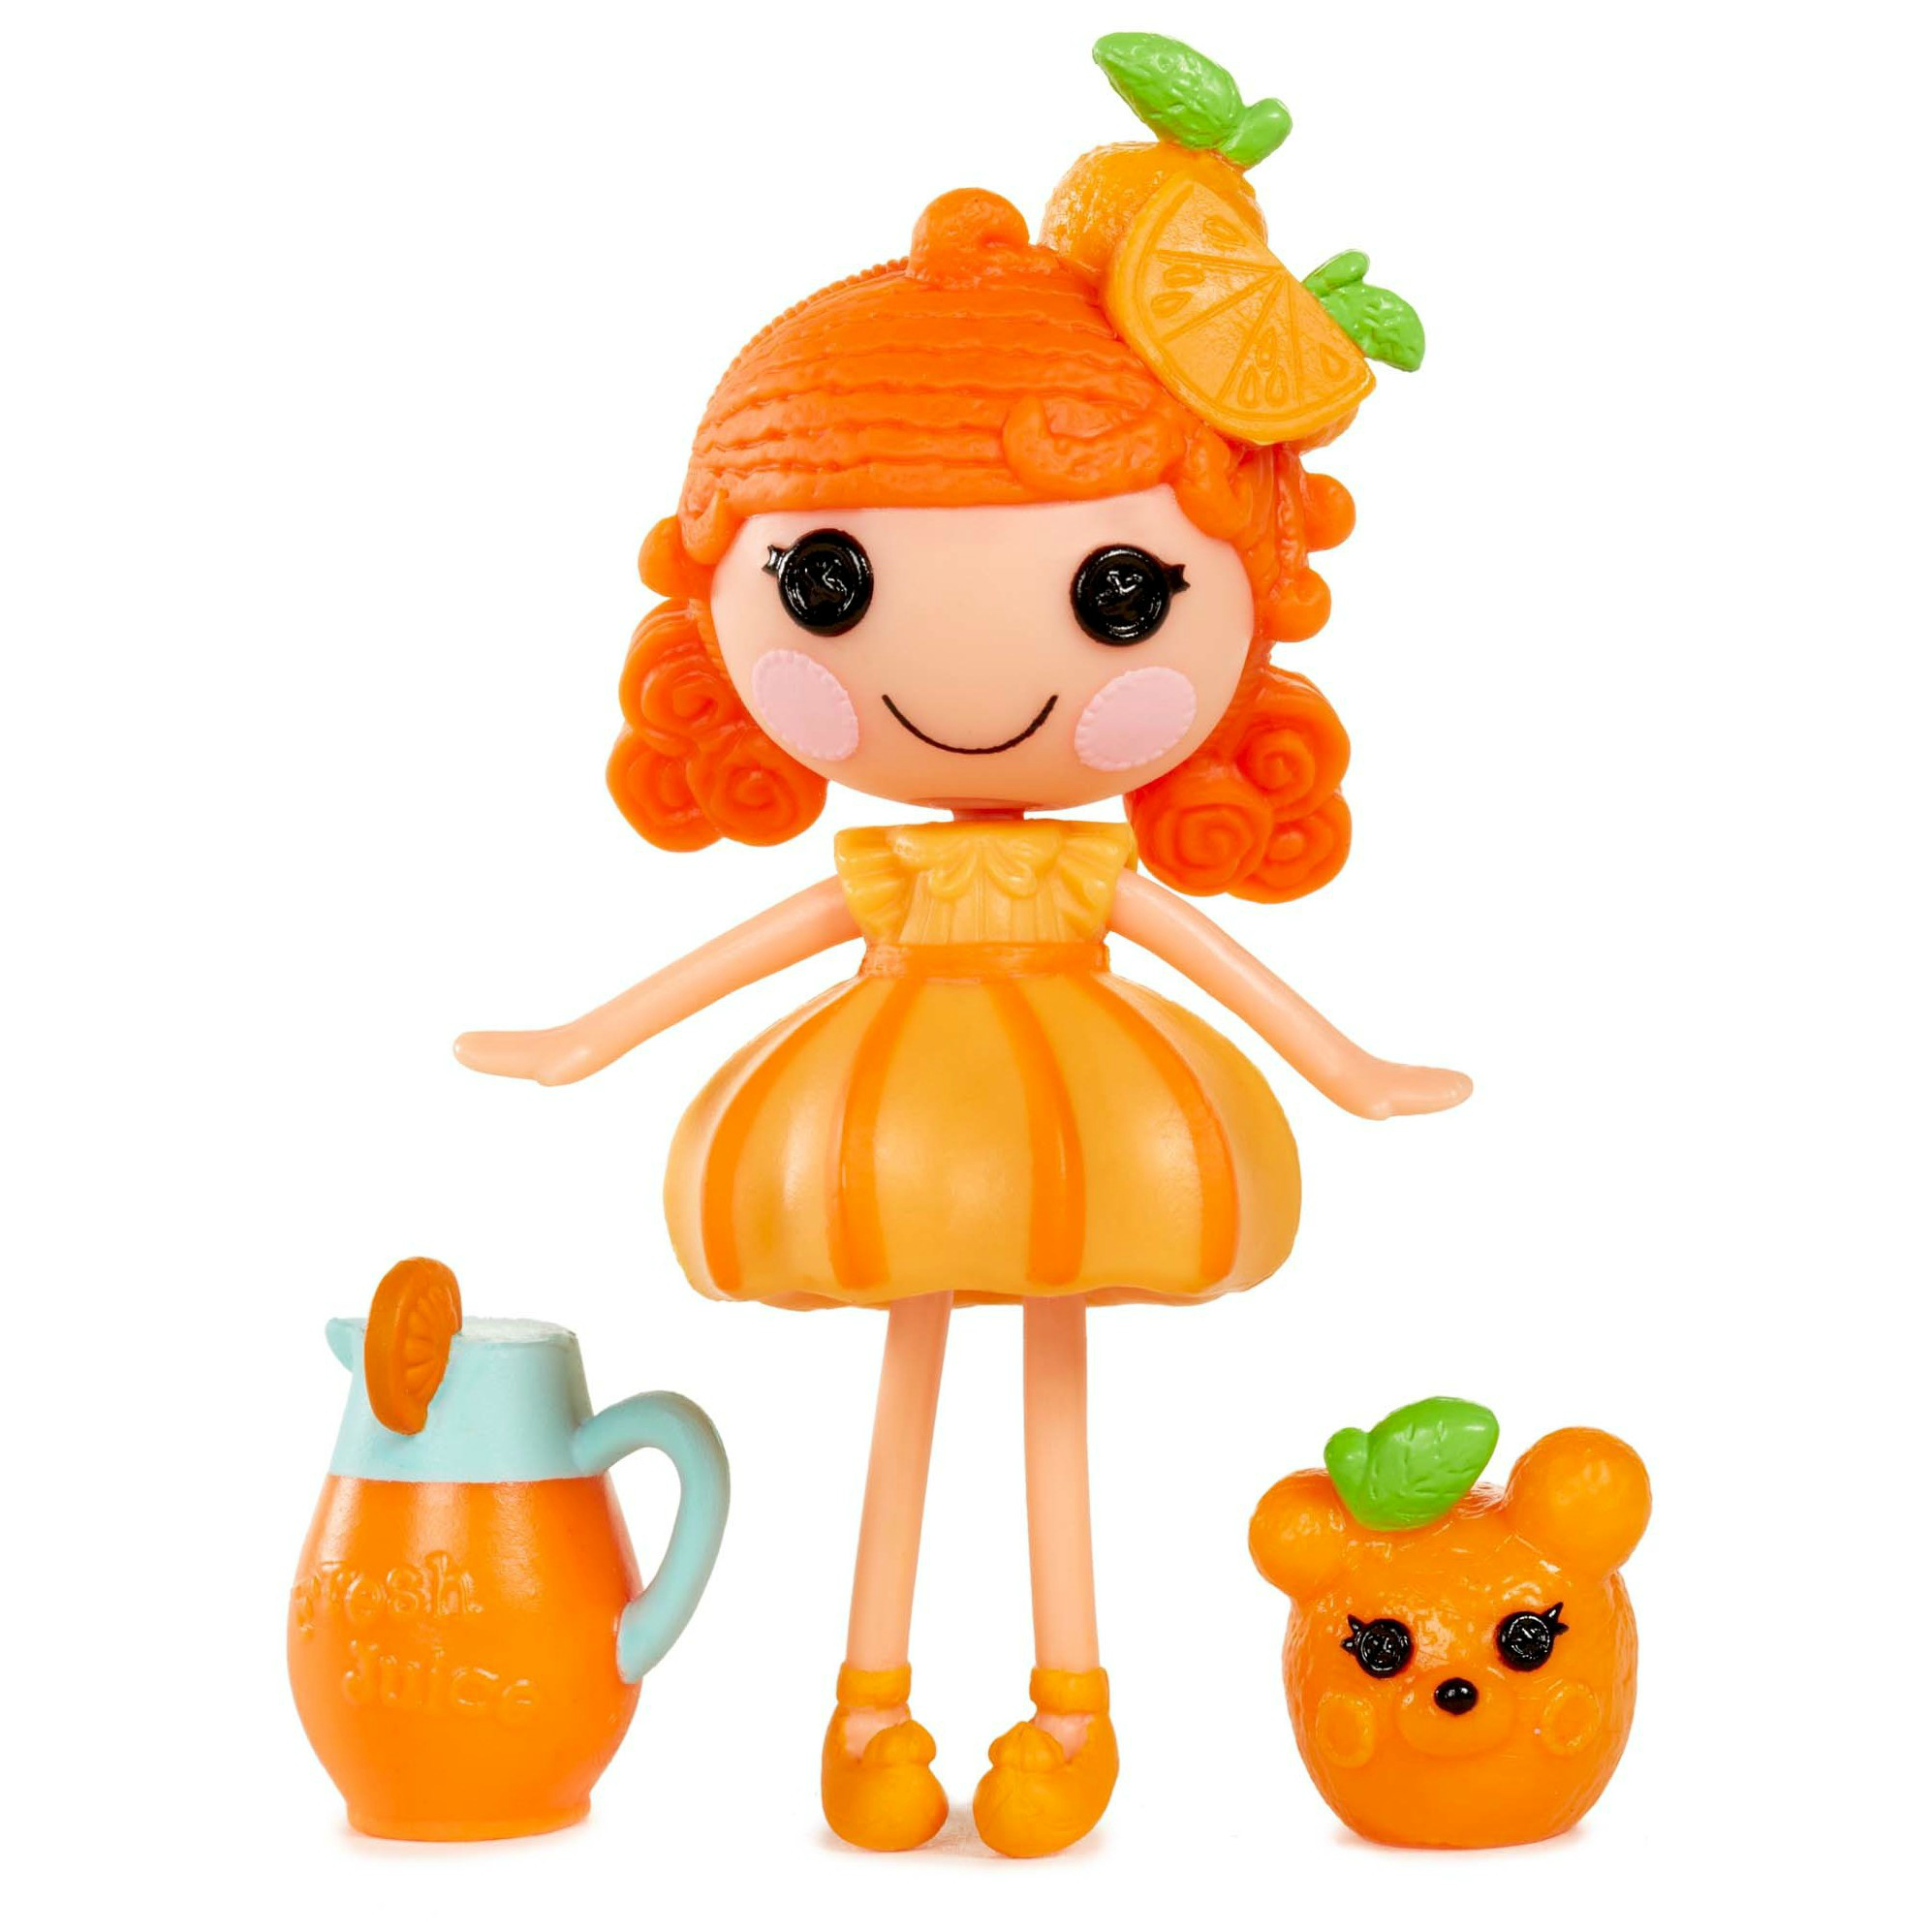 Tangerine clipart Wiki Tangerine Lalaloopsy  Land